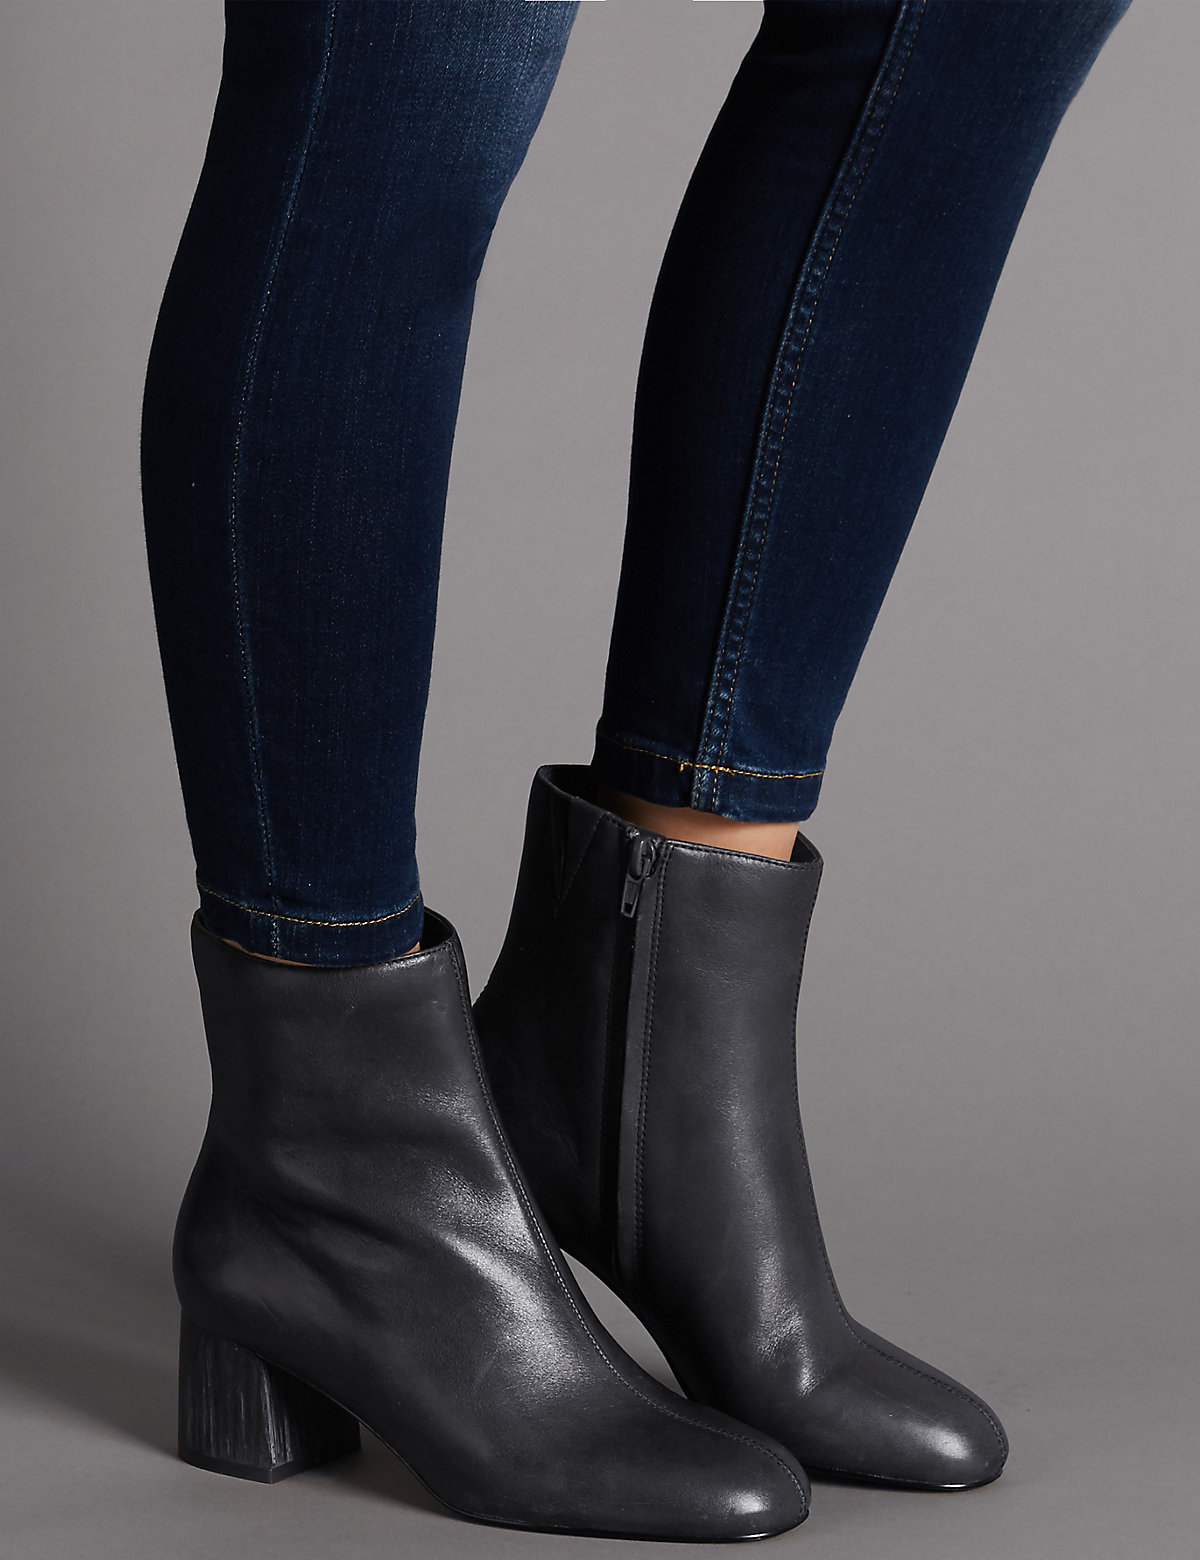 Autograph Leather Block Heel Ankle Boots